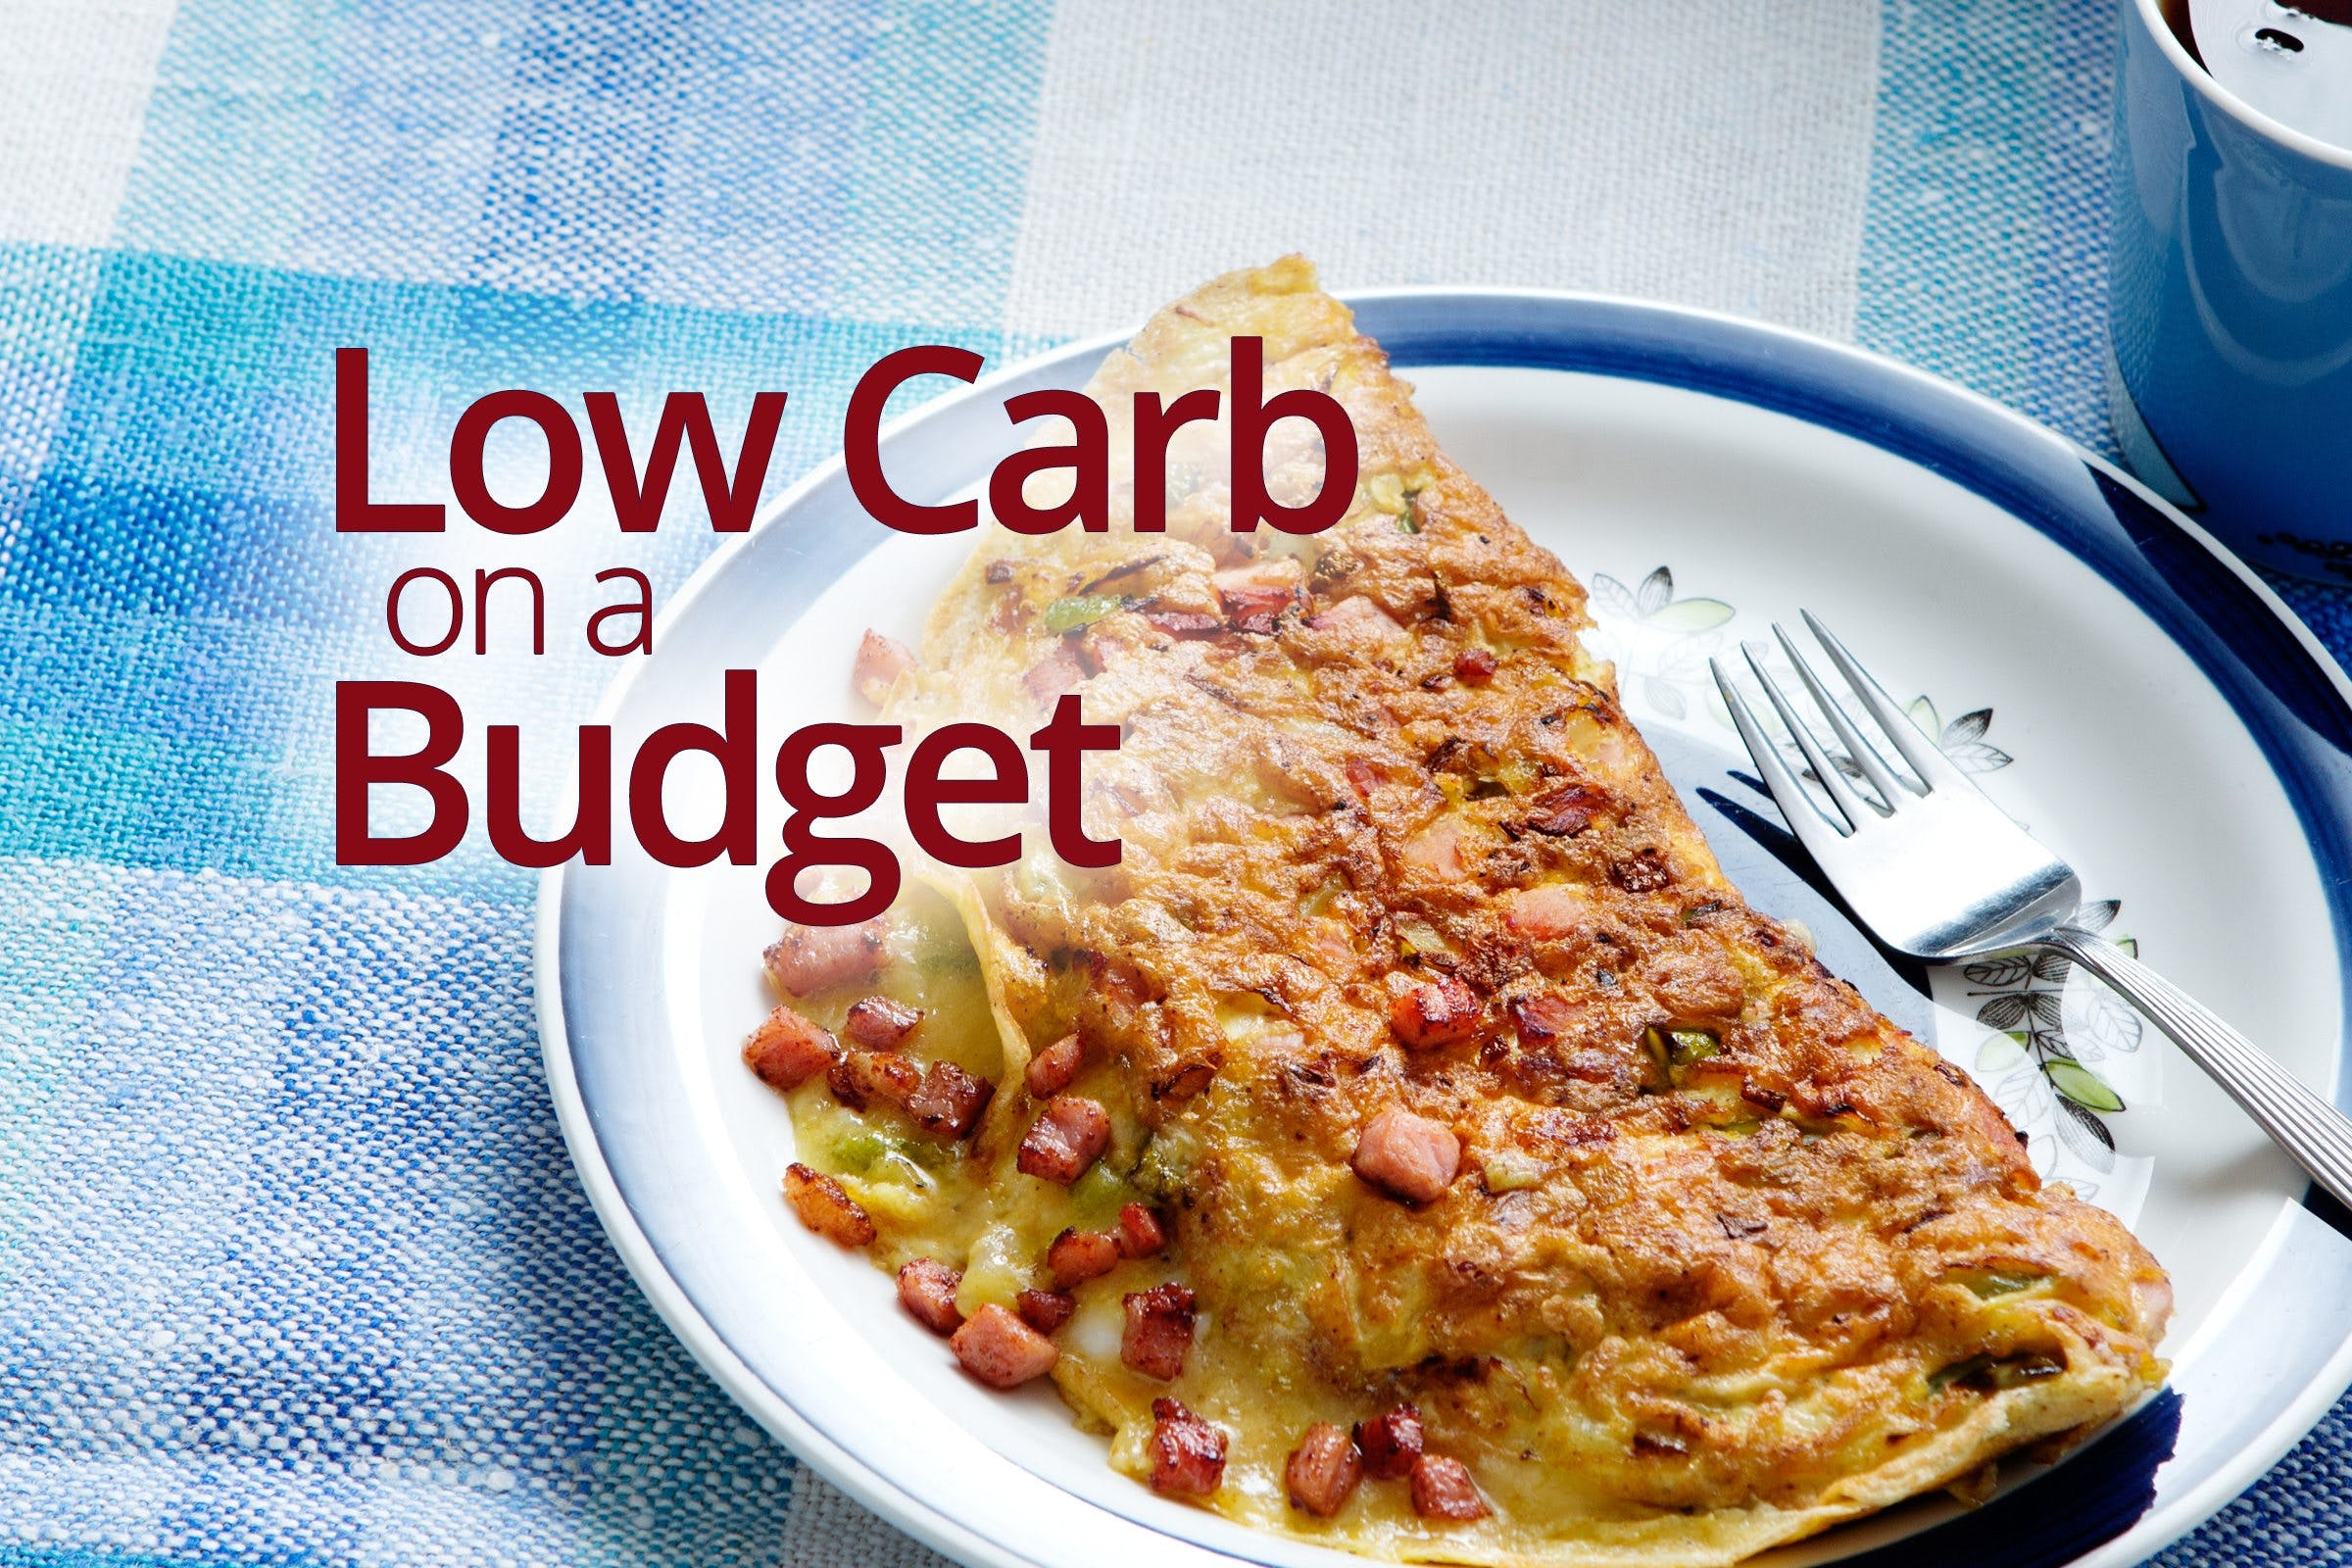 Low carb and keto on a budget